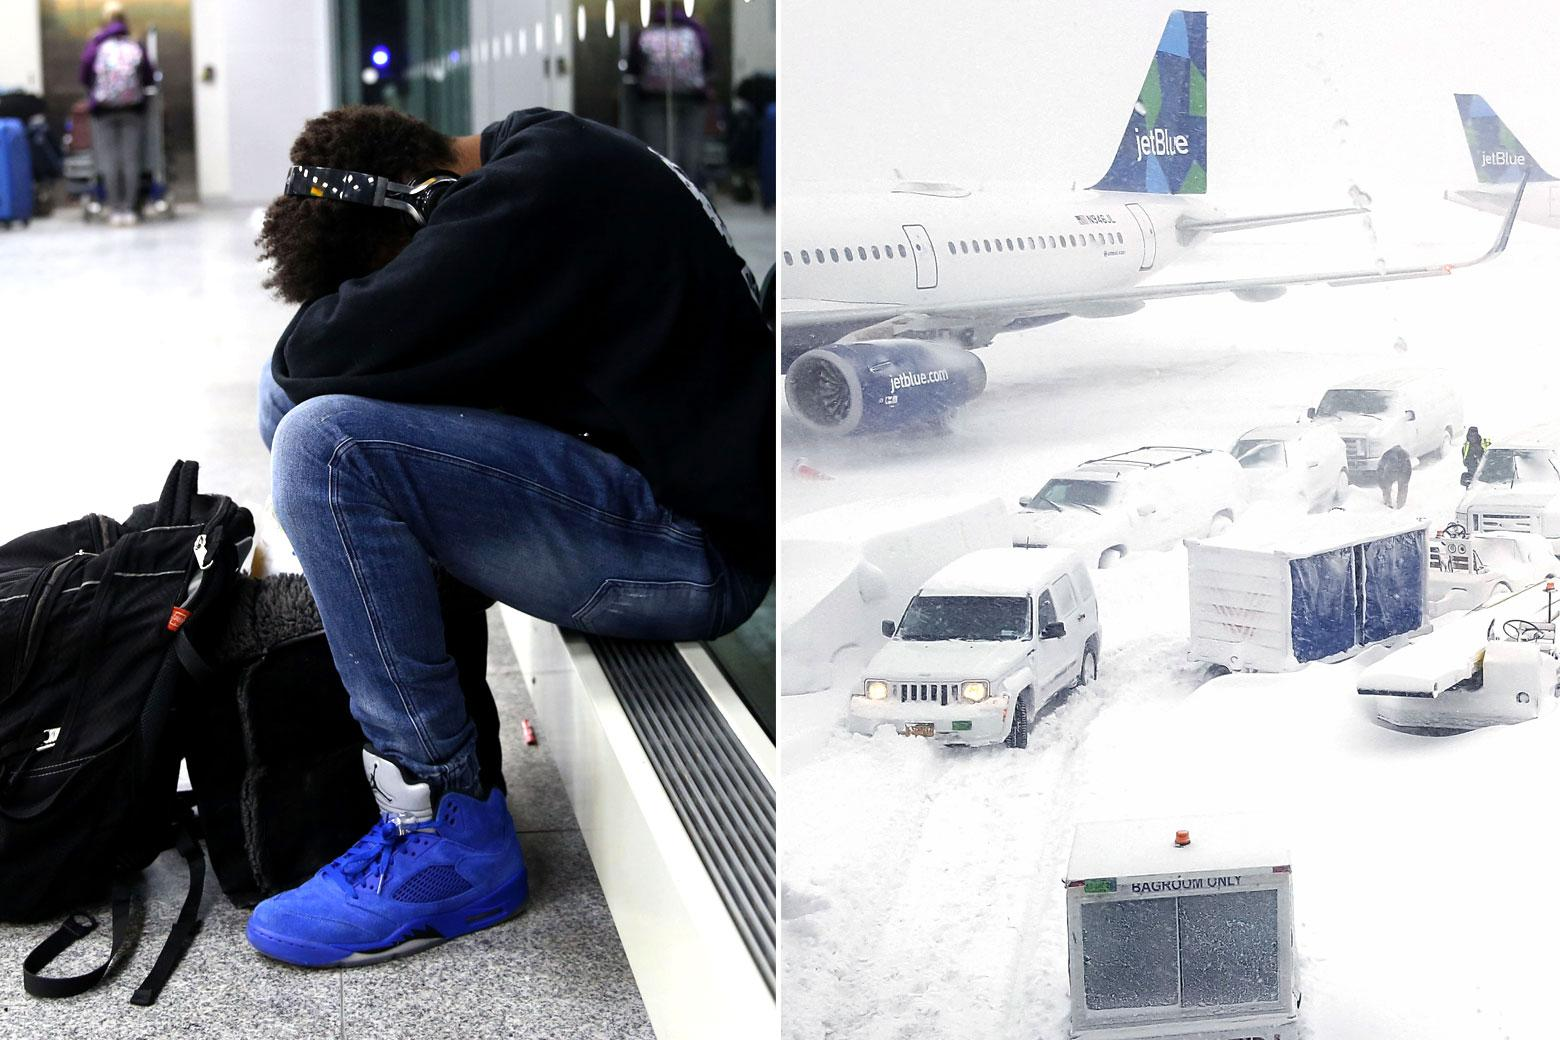 At left, a passenger sits with his head between his knees. At right, a snowy scene on the JFK tarmac.